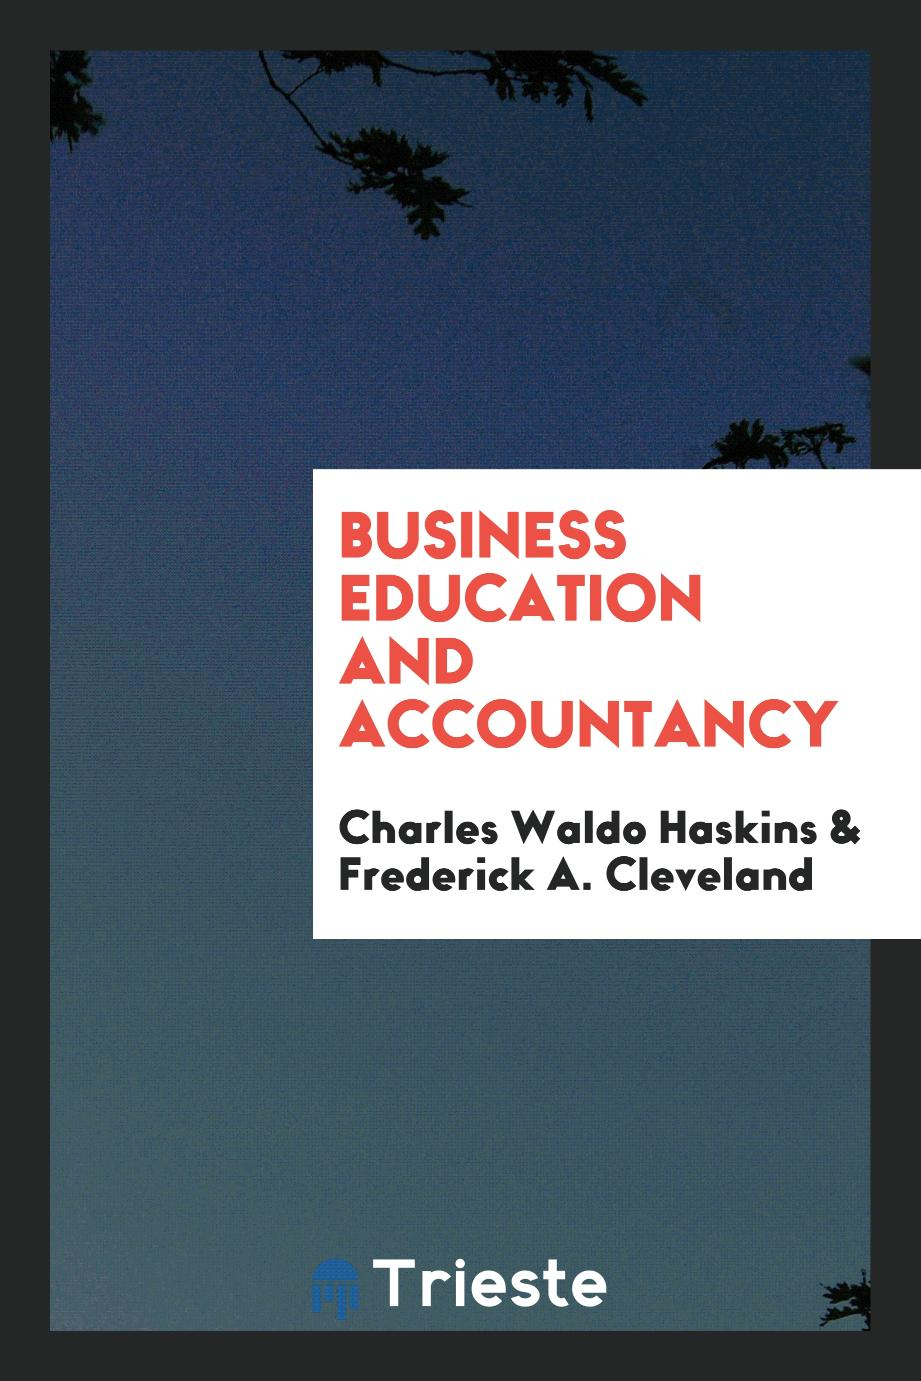 Business education and accountancy